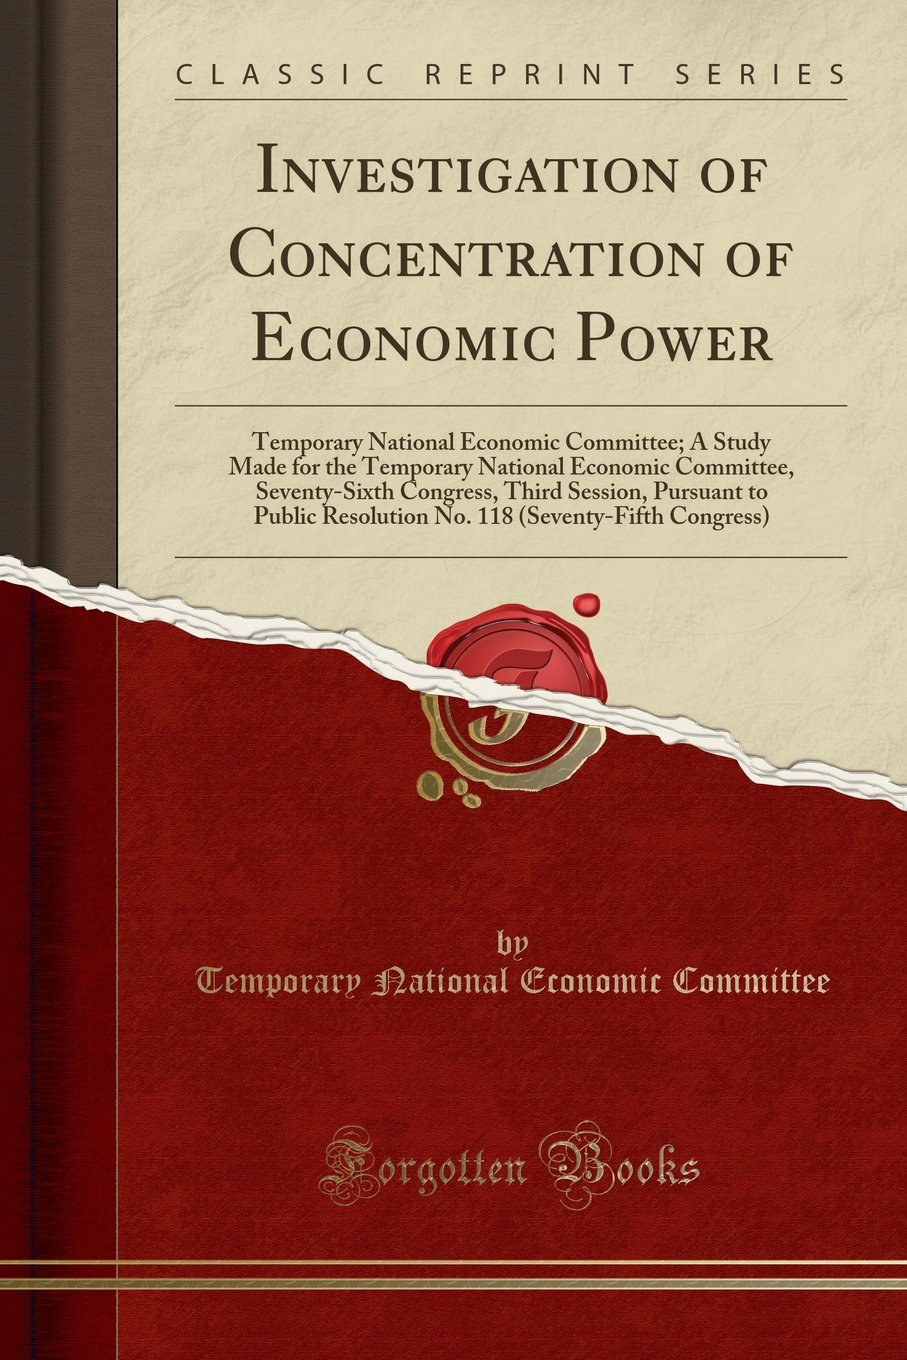 Investigation of Concentration of Economic Power: Monograph No. 43: The Motion Picture Industry, a Pattern of Control (Classic Reprint) pdf epub